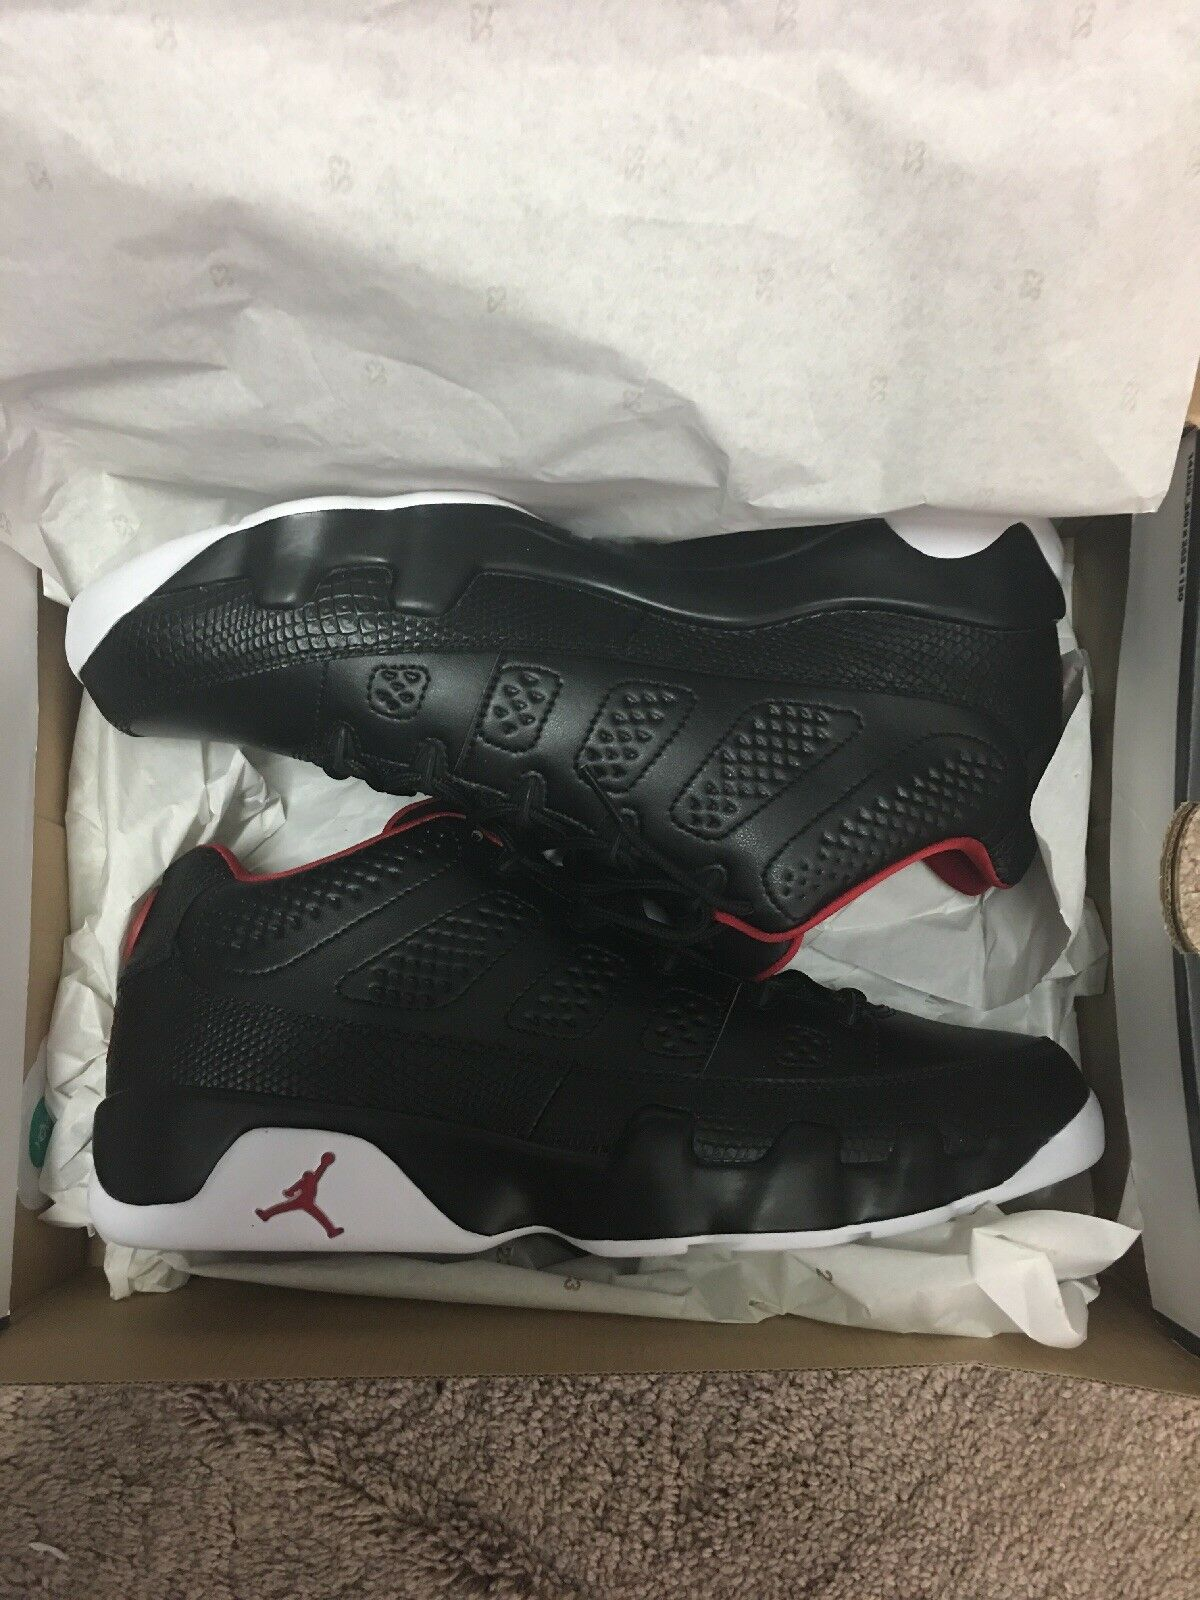 Nike Air Jordan Retro IX 9 Low Black White Gym Red Bred Playoff size 13